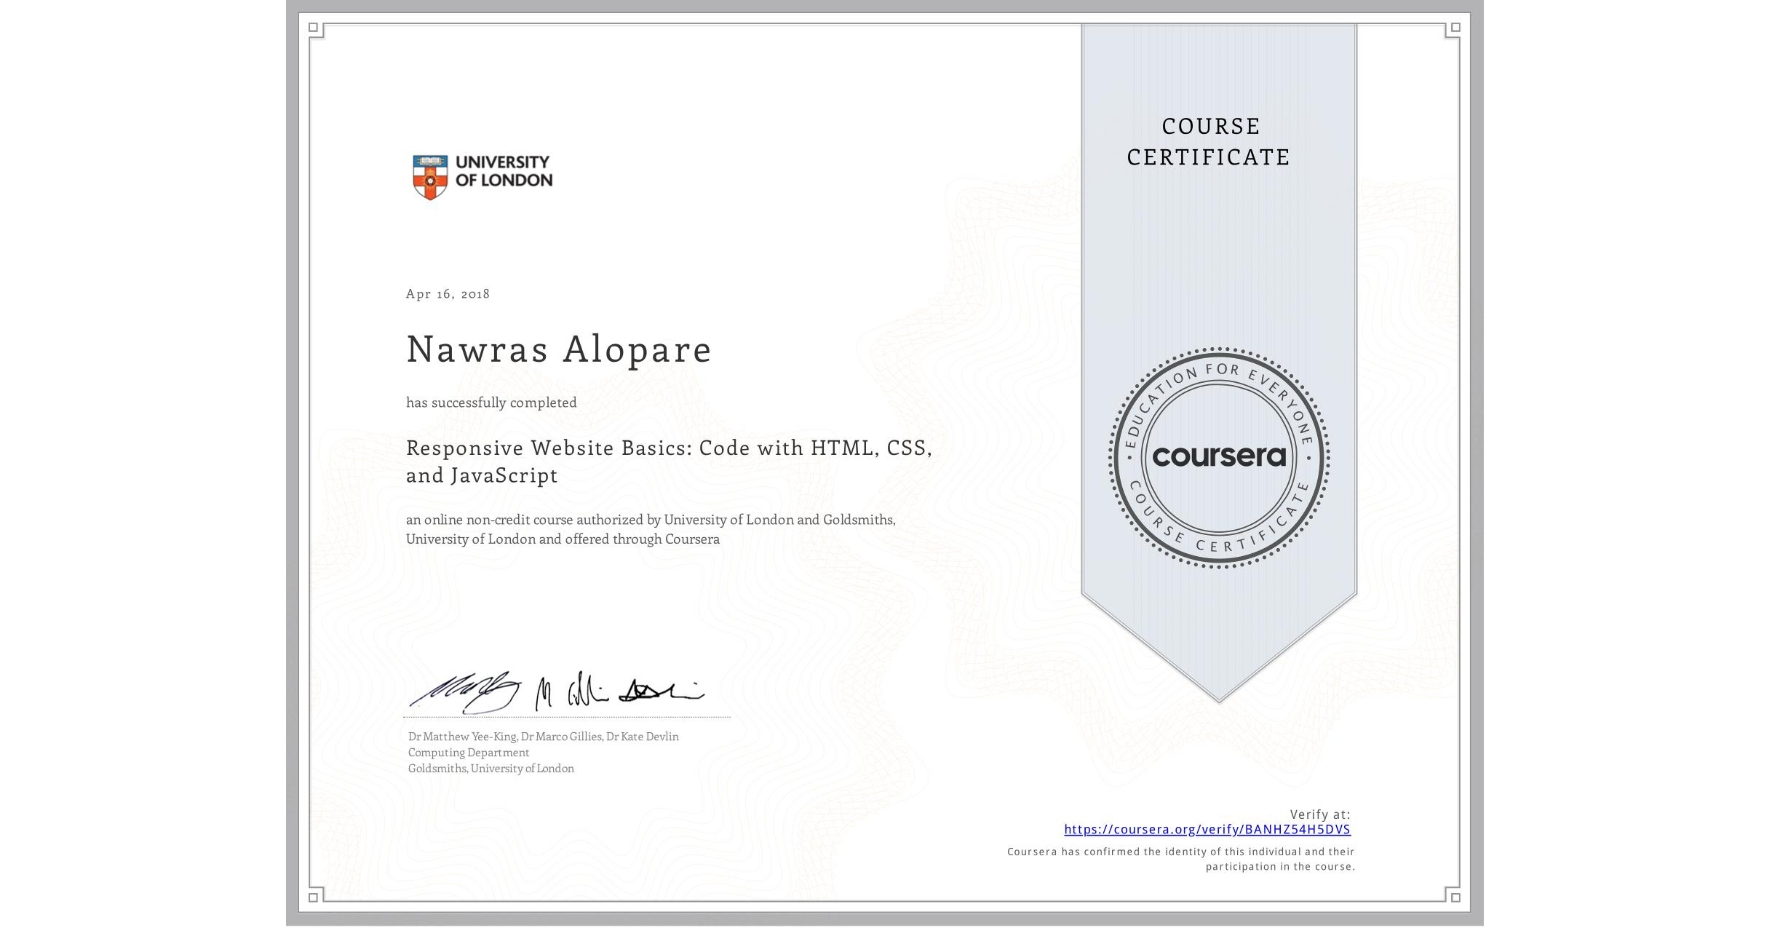 View certificate for Nawras Alopare, Responsive Website Basics: Code with HTML, CSS, and JavaScript , an online non-credit course authorized by University of London & Goldsmiths, University of London and offered through Coursera